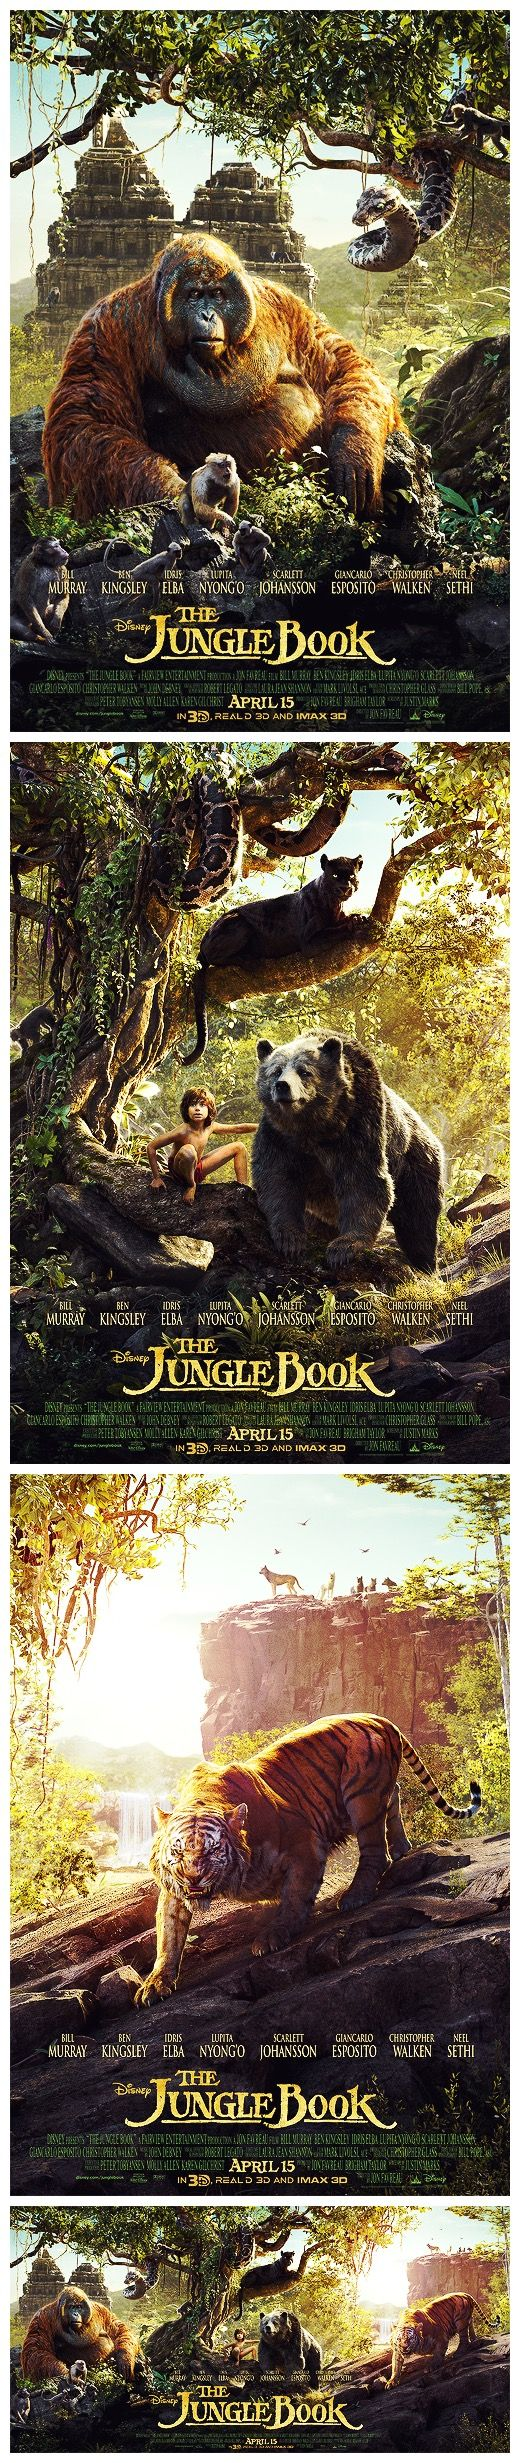 Can anybody give me a summary of the following chapters from The Jungle Book?